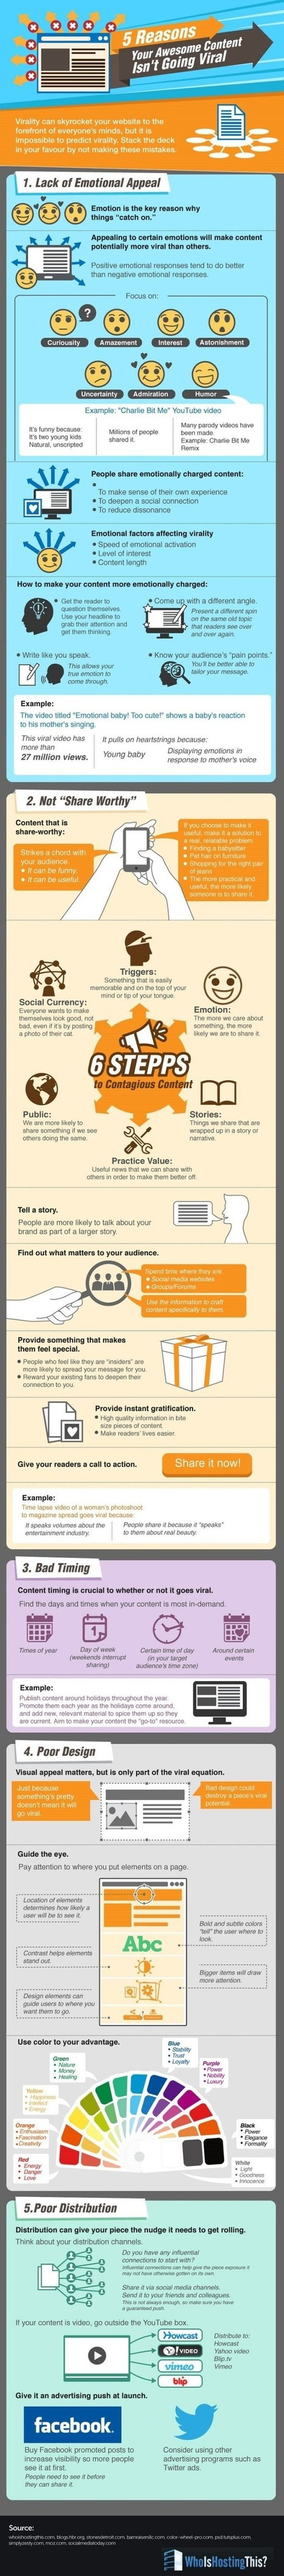 Check These 5 Tactics to Make Your Content Go Viral #infographic | Content and Curation for Nonprofits | Scoop.it